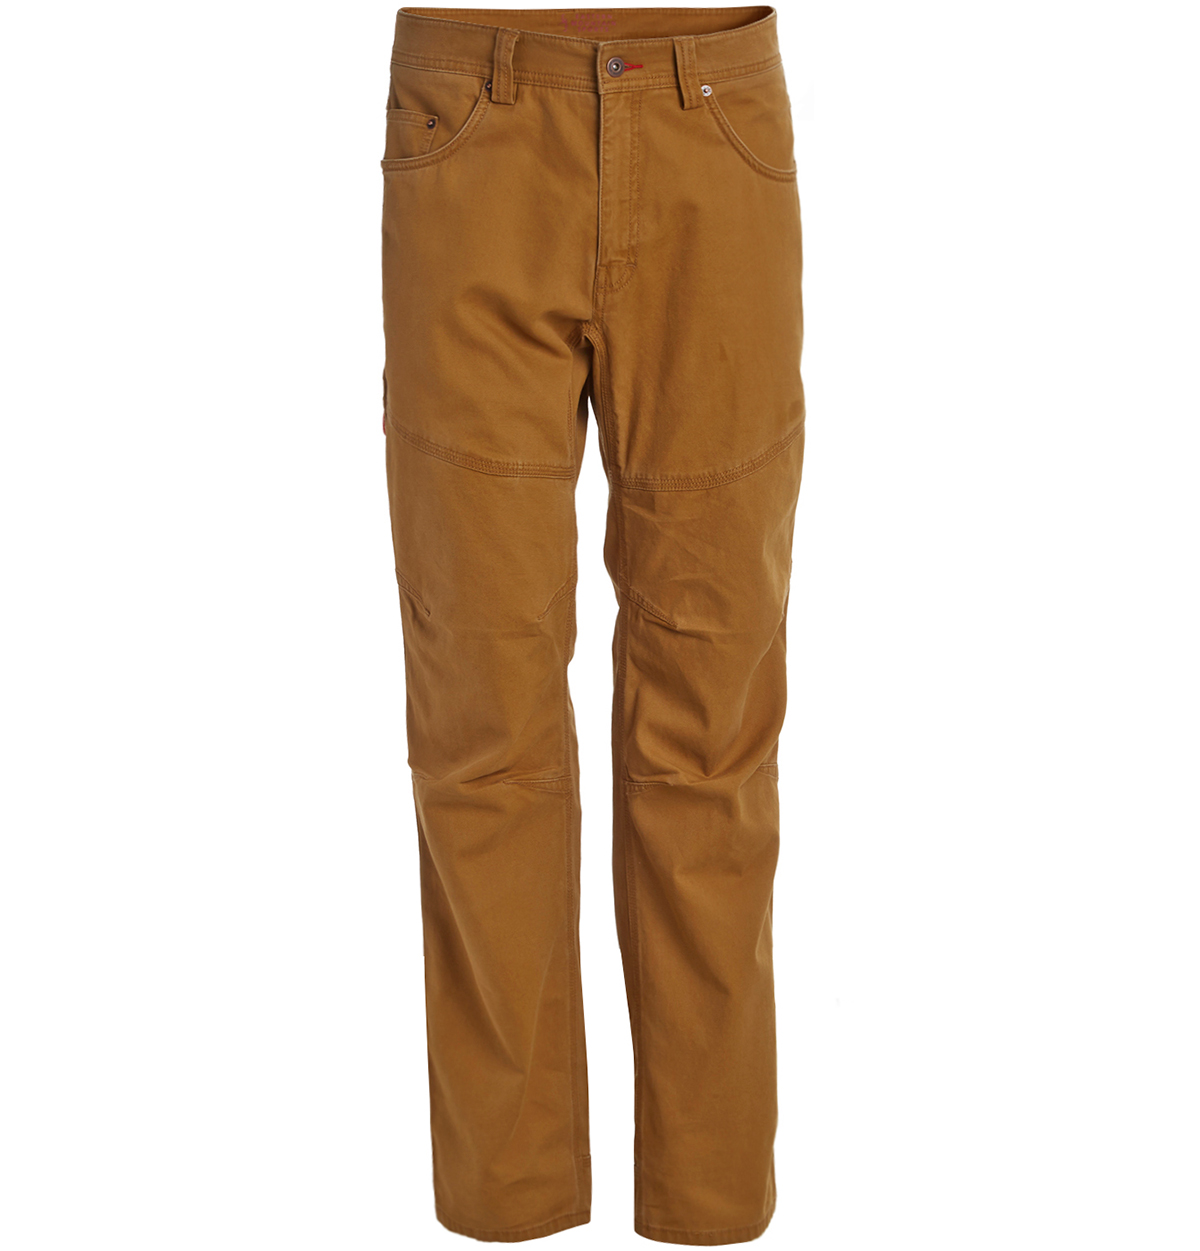 Ems Men's Fencemender Insulated Pants - Brown, 34/R